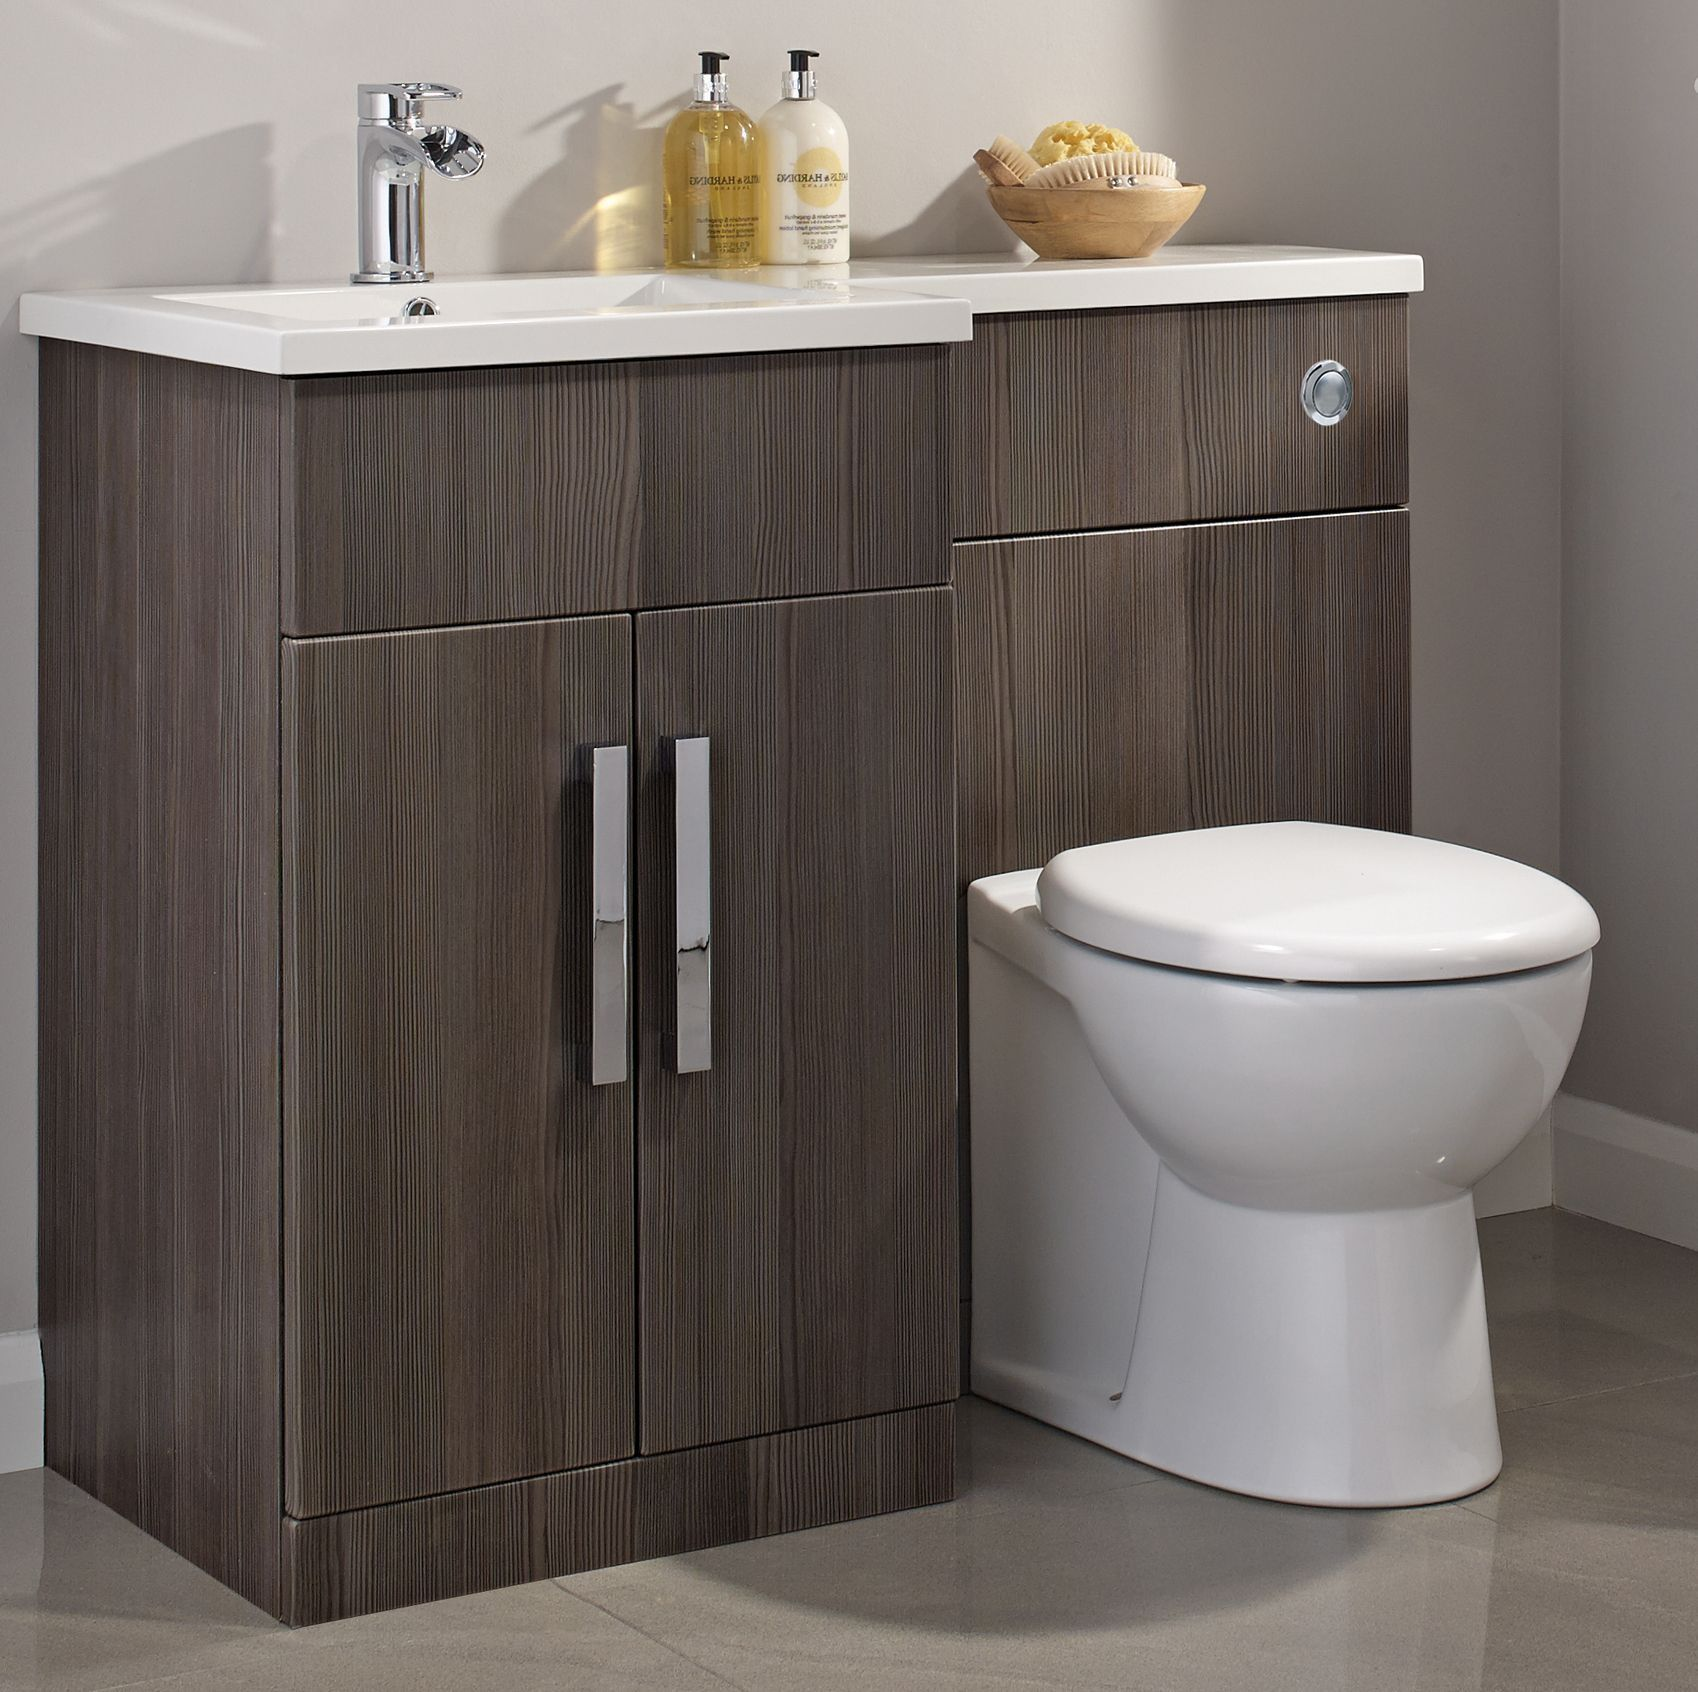 Cooke lewis ardesio bodega grey lh vanity toilet pack B q bathroom design service